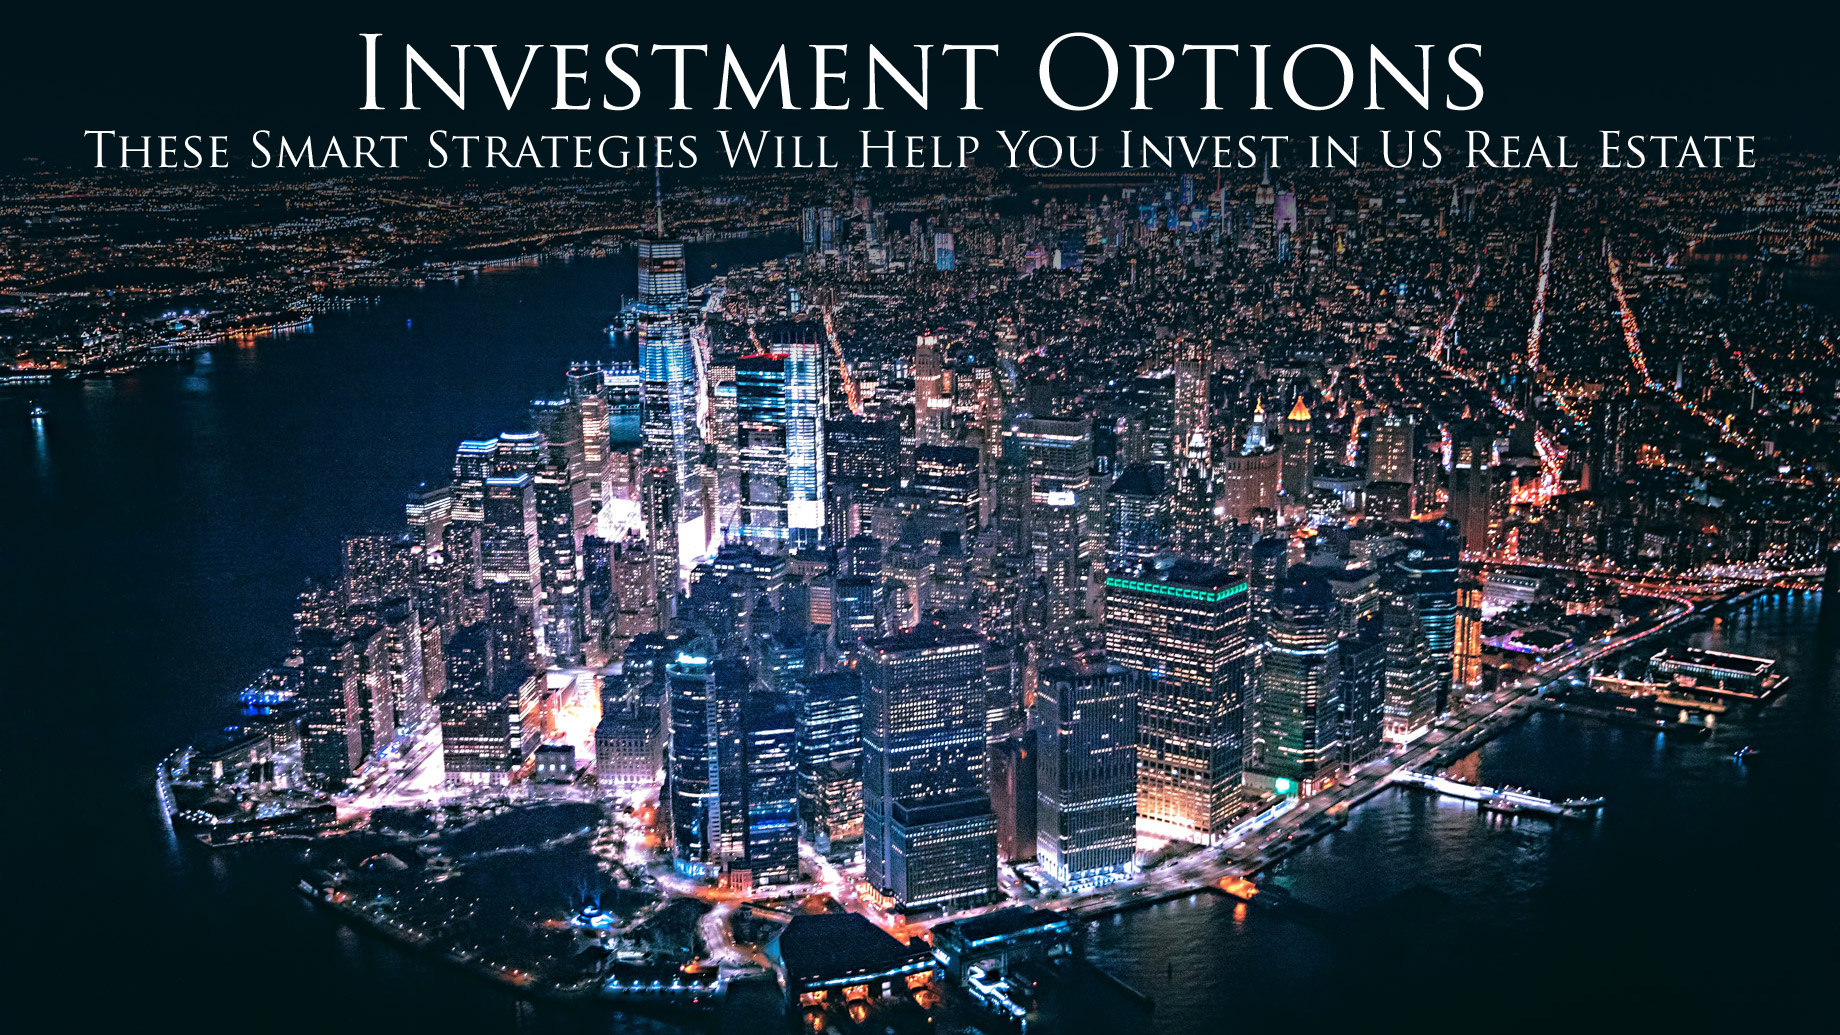 Investment Options - These Smart Strategies Will Help You Invest in US Real Estate